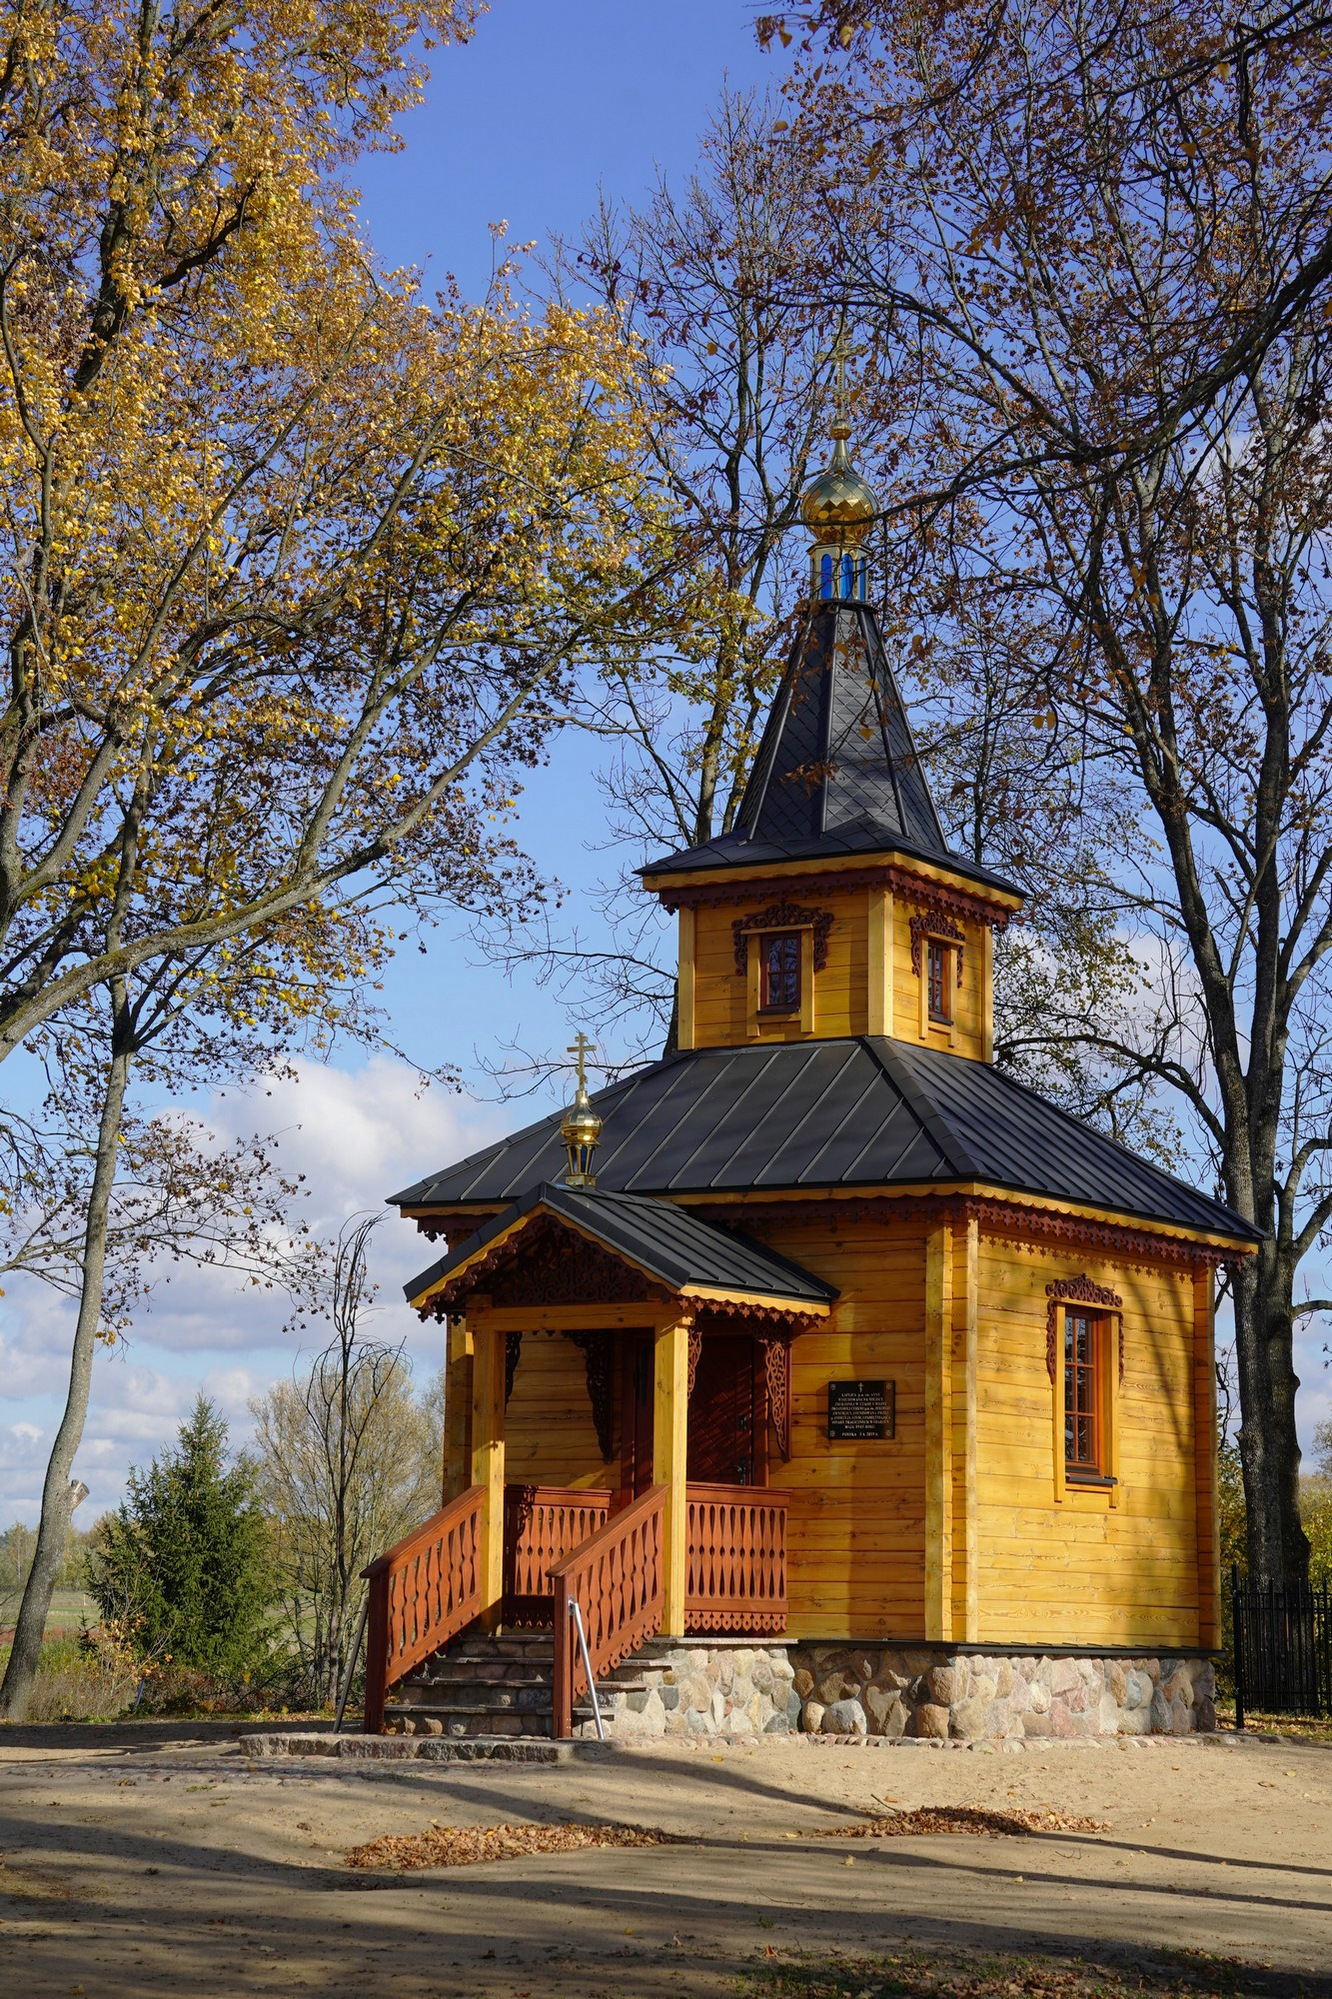 The Orthodox chapel in Totoka